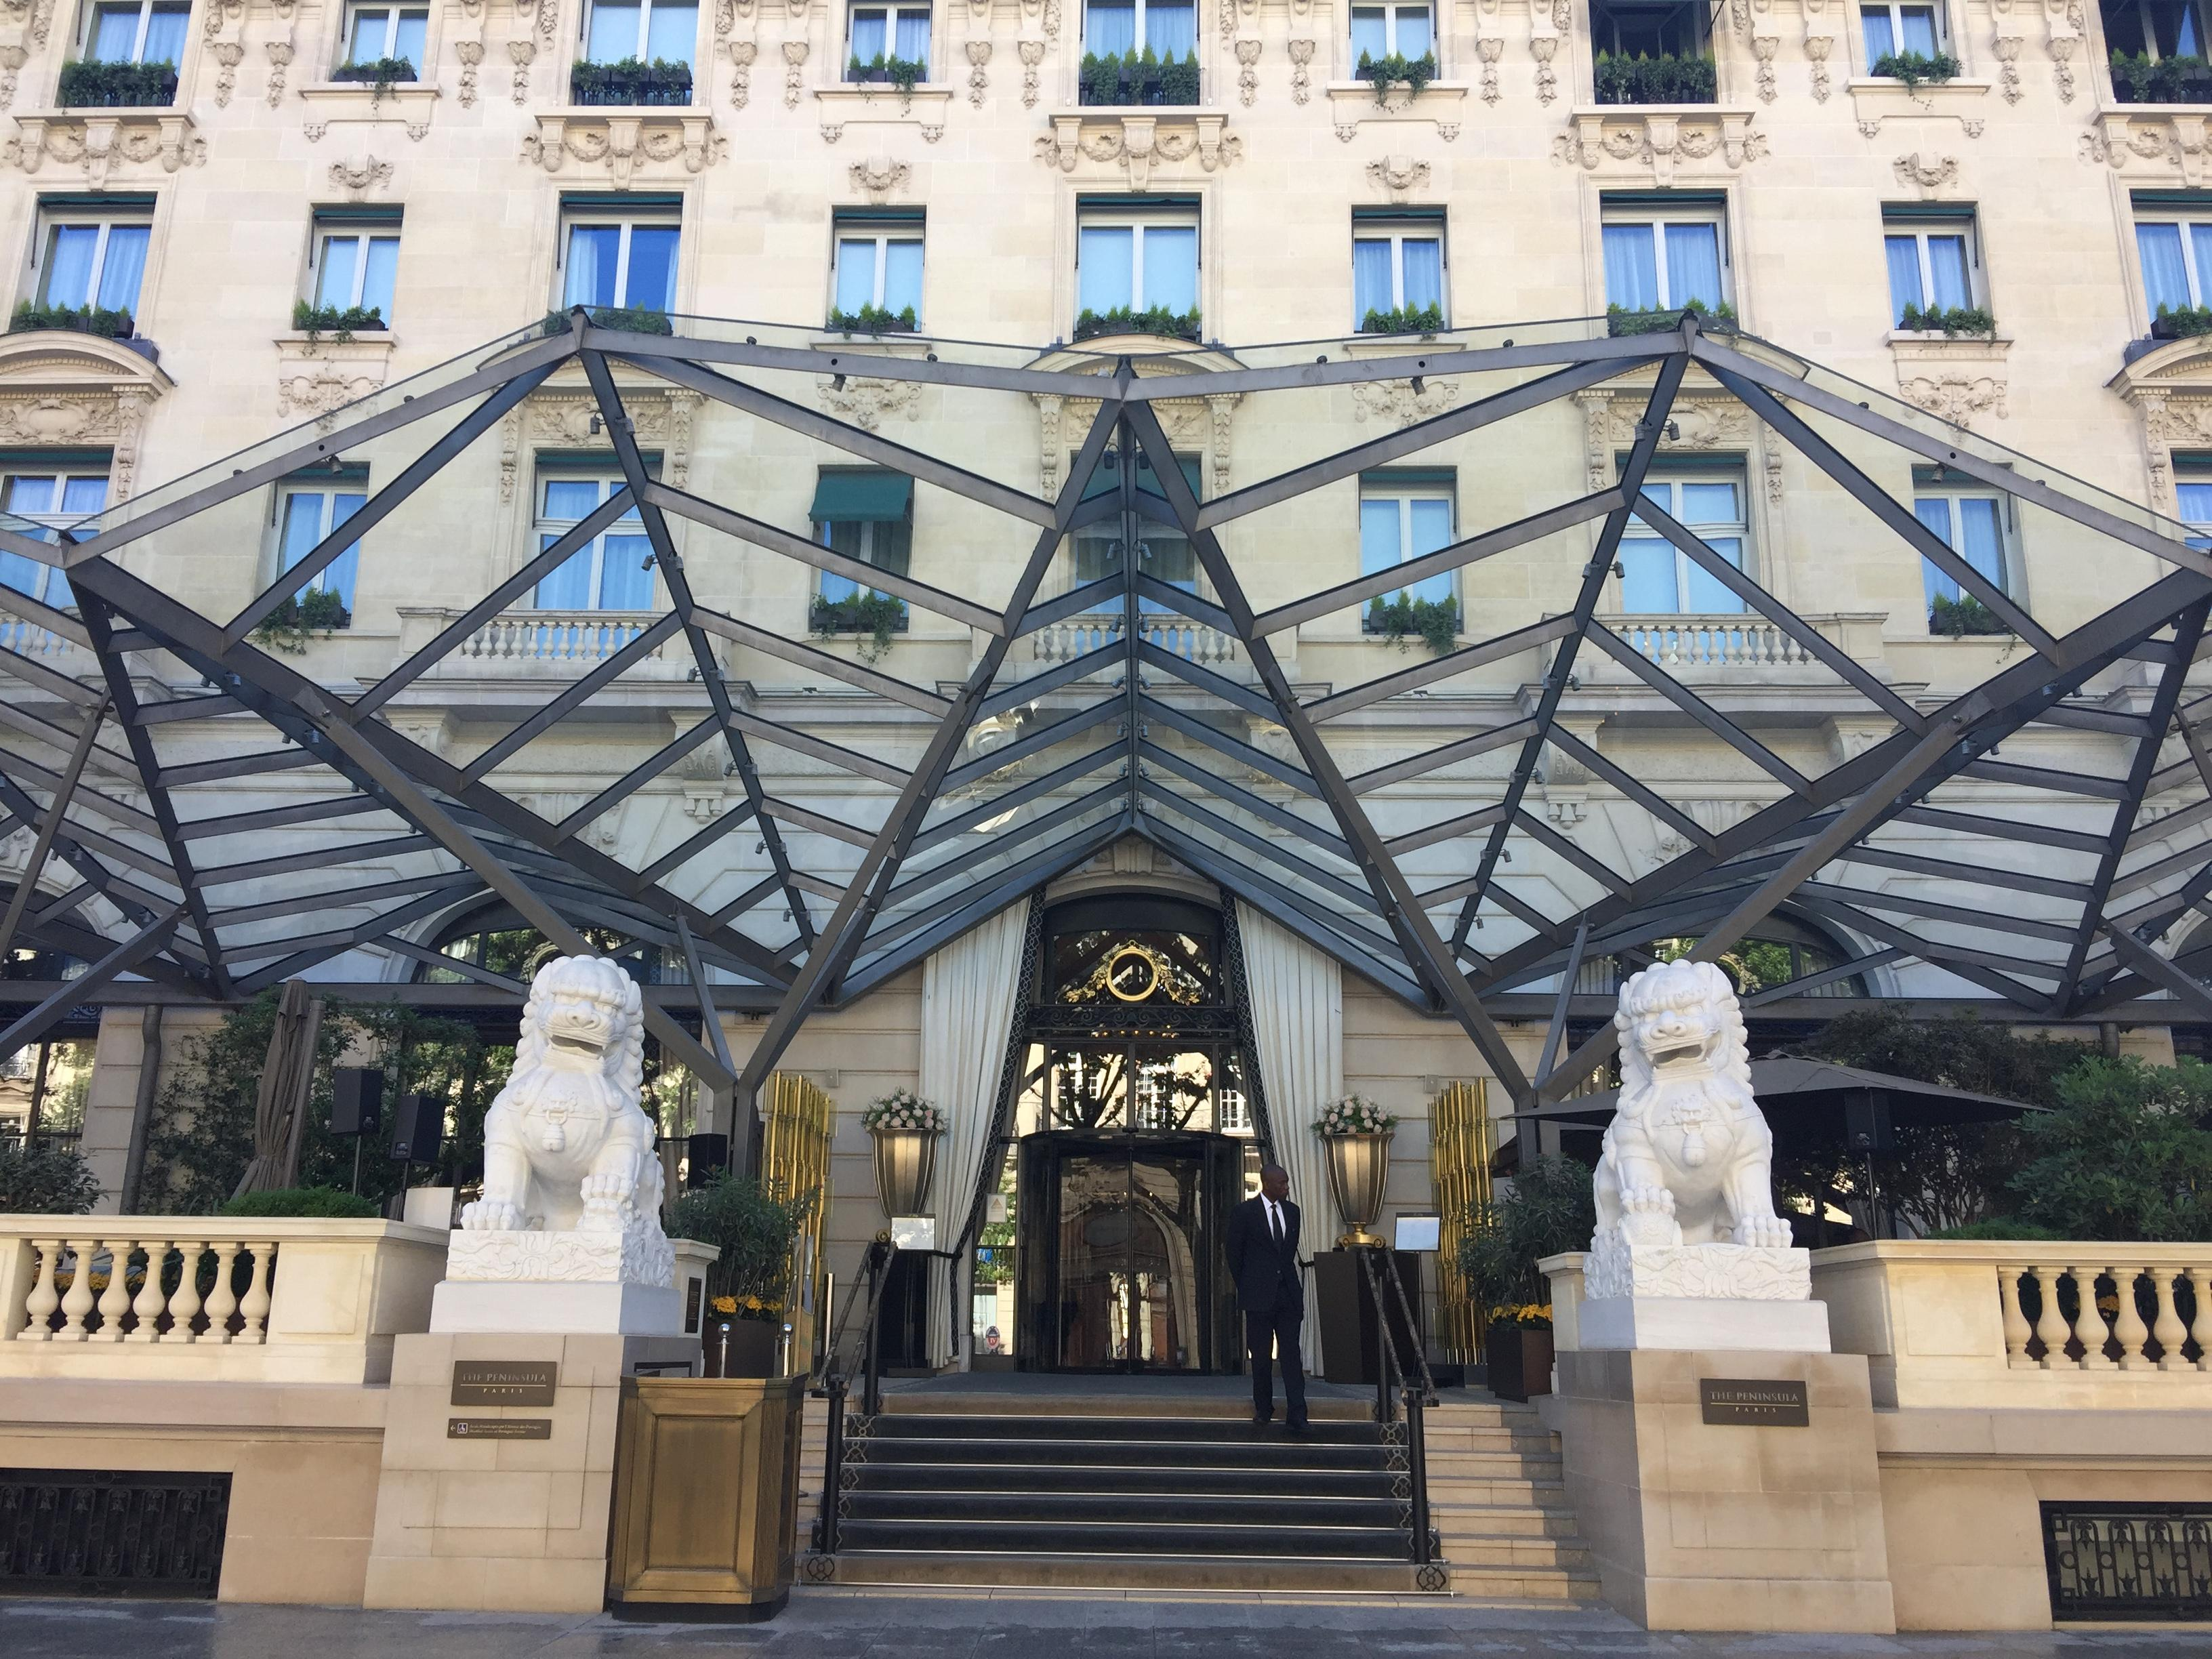 The entrance to the Peninsula Paris Hotel. Old meets new in architecture.